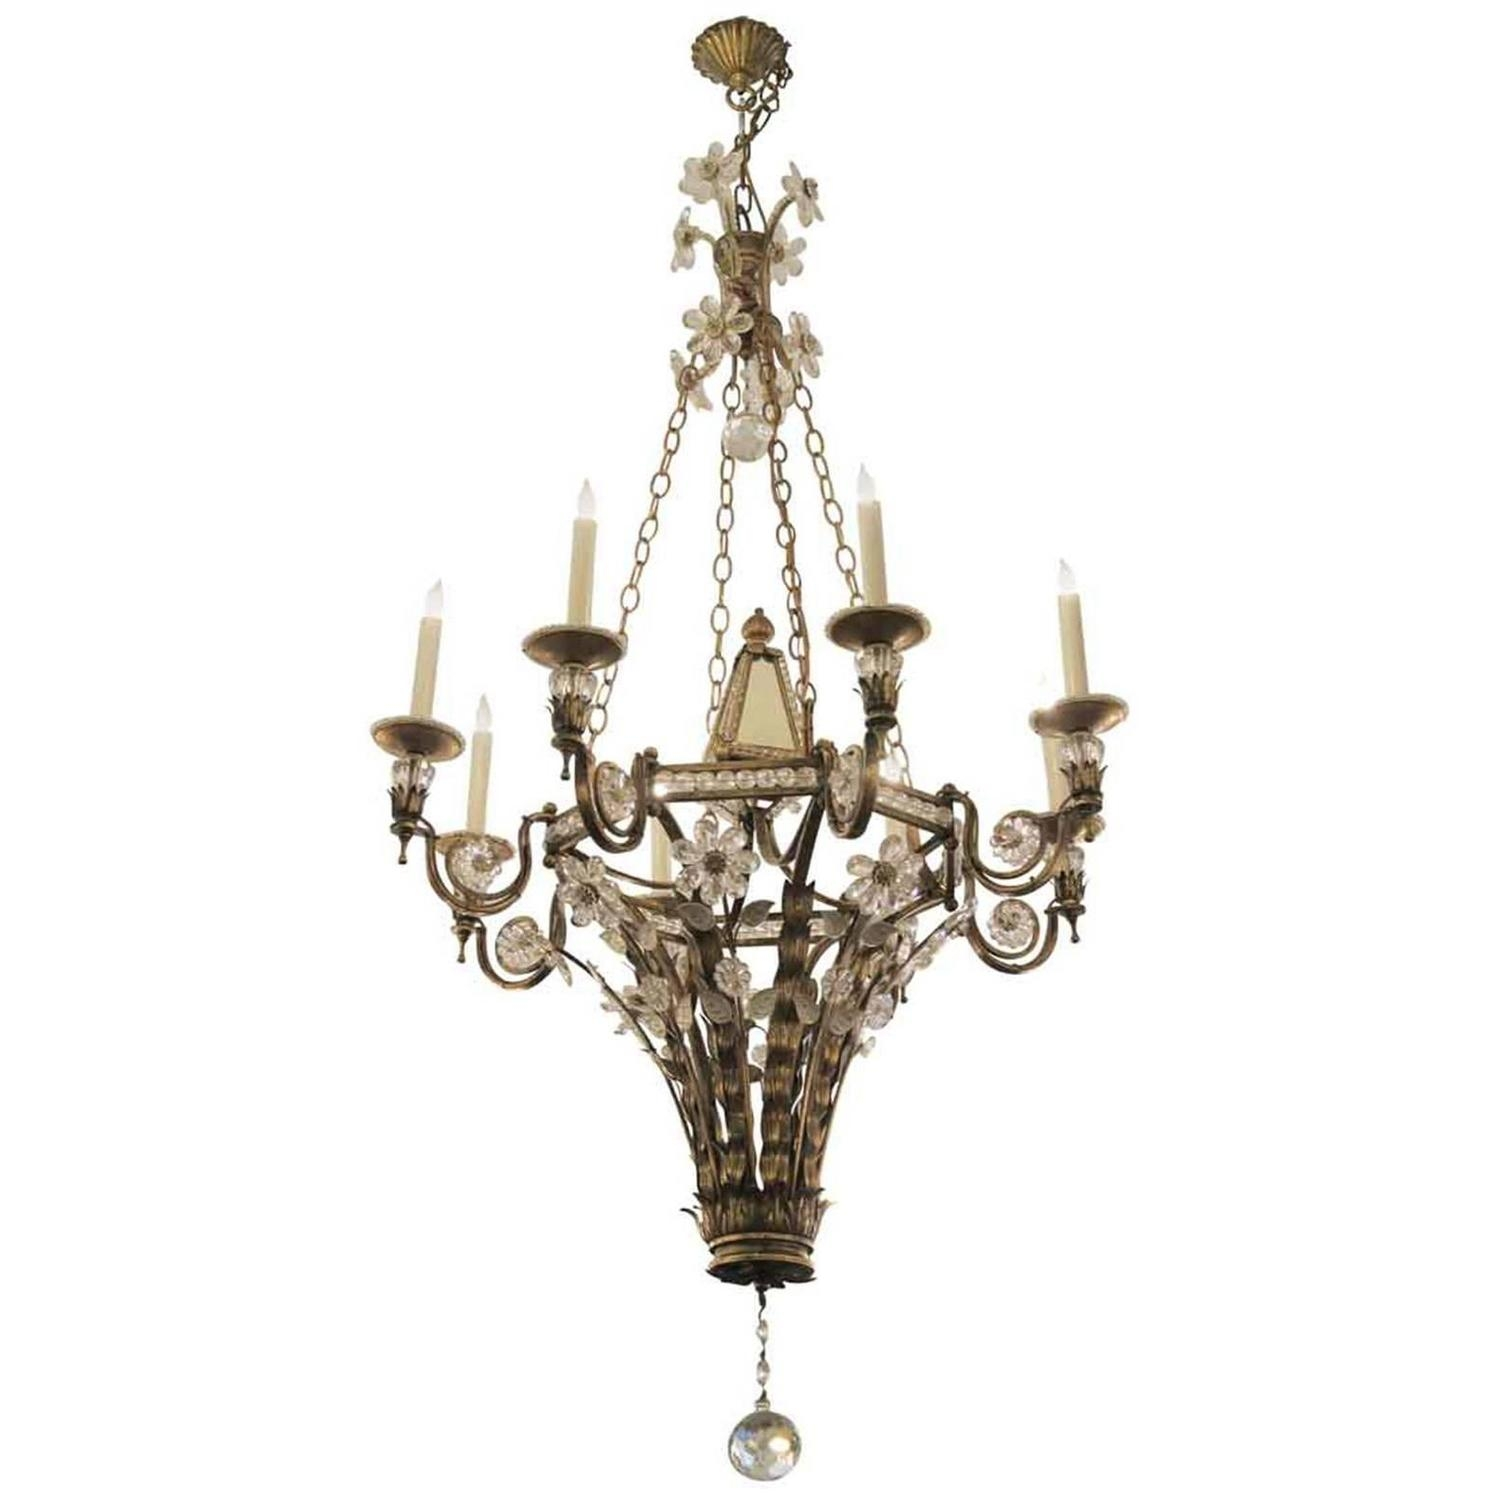 Wrought Iron And Crystal Floral Eight Arm Mirrored Chandelier With Regarding Mirrored Chandelier (Image 15 of 15)